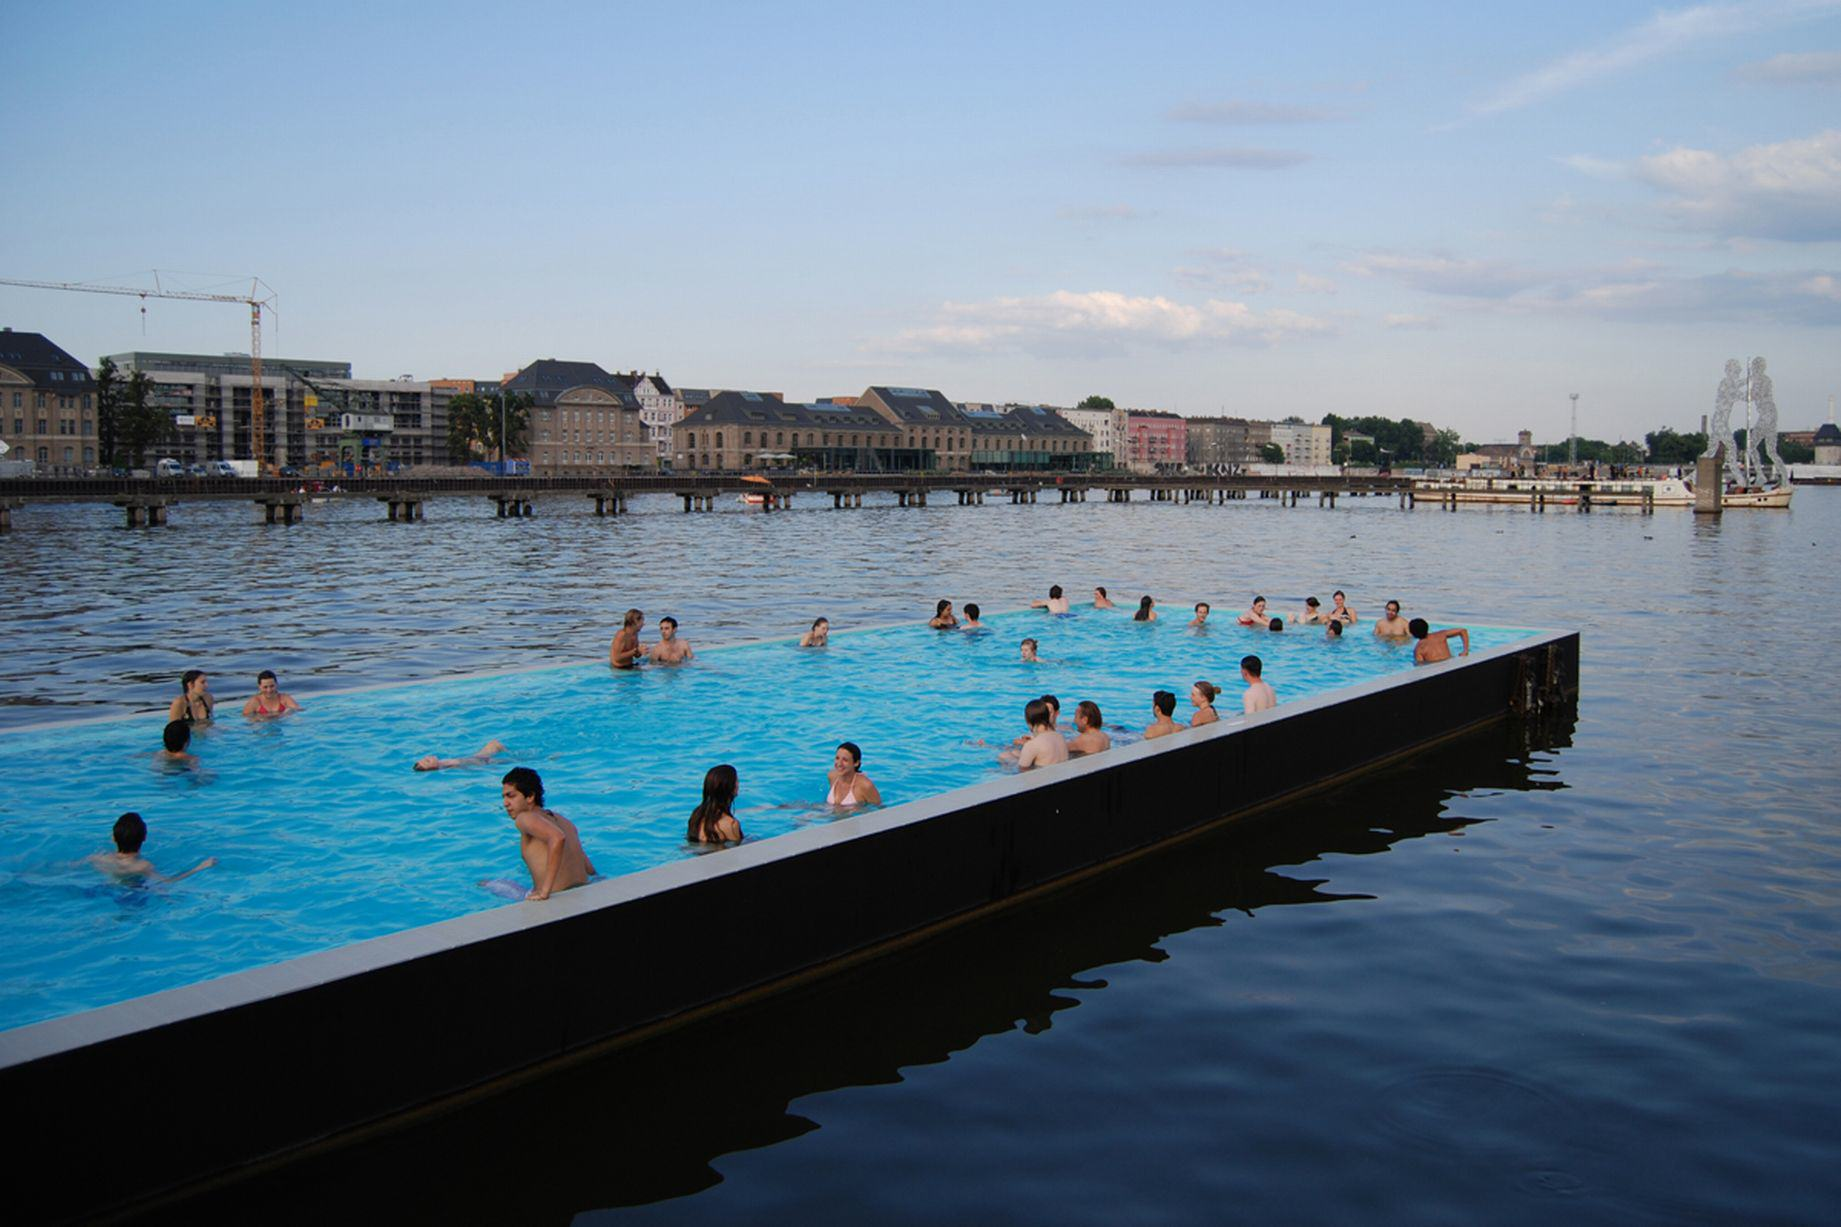 These Are Probably The Best Swimming Pools In The World - Pools In Berlin